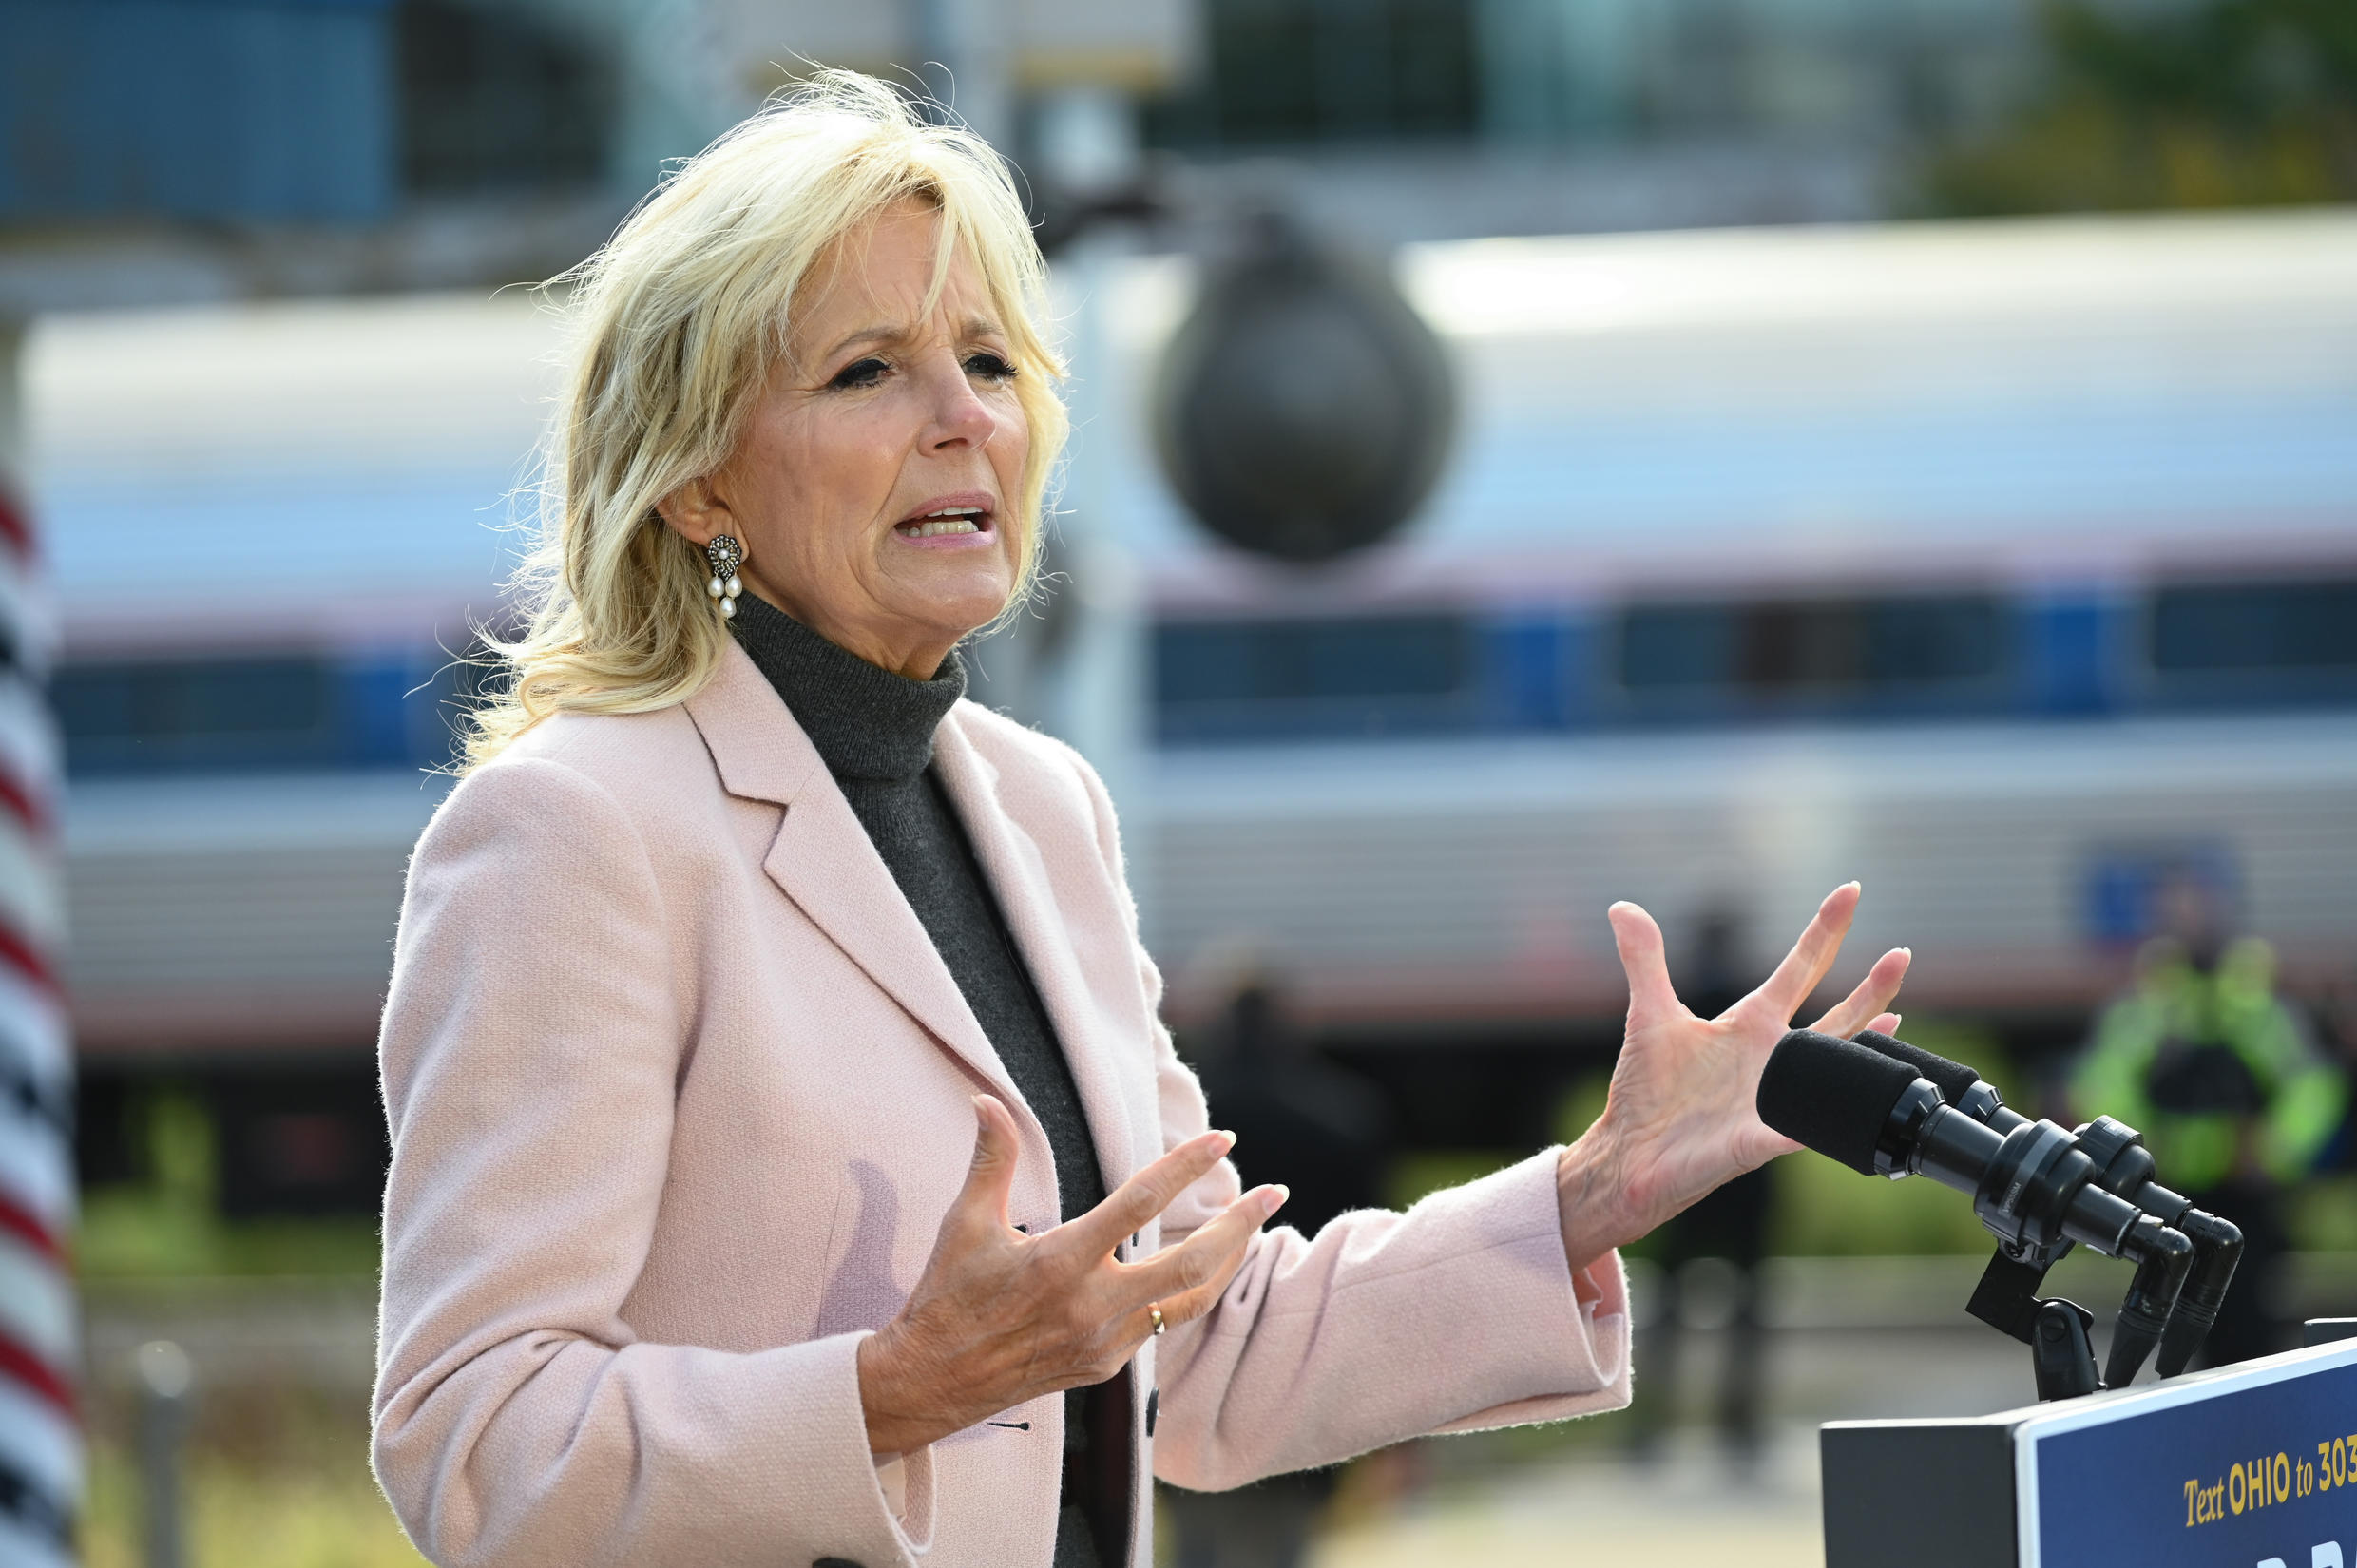 Jill Biden could transform the role of US first lady if she continues to teach full-time while she also fulfills her duties at the White House